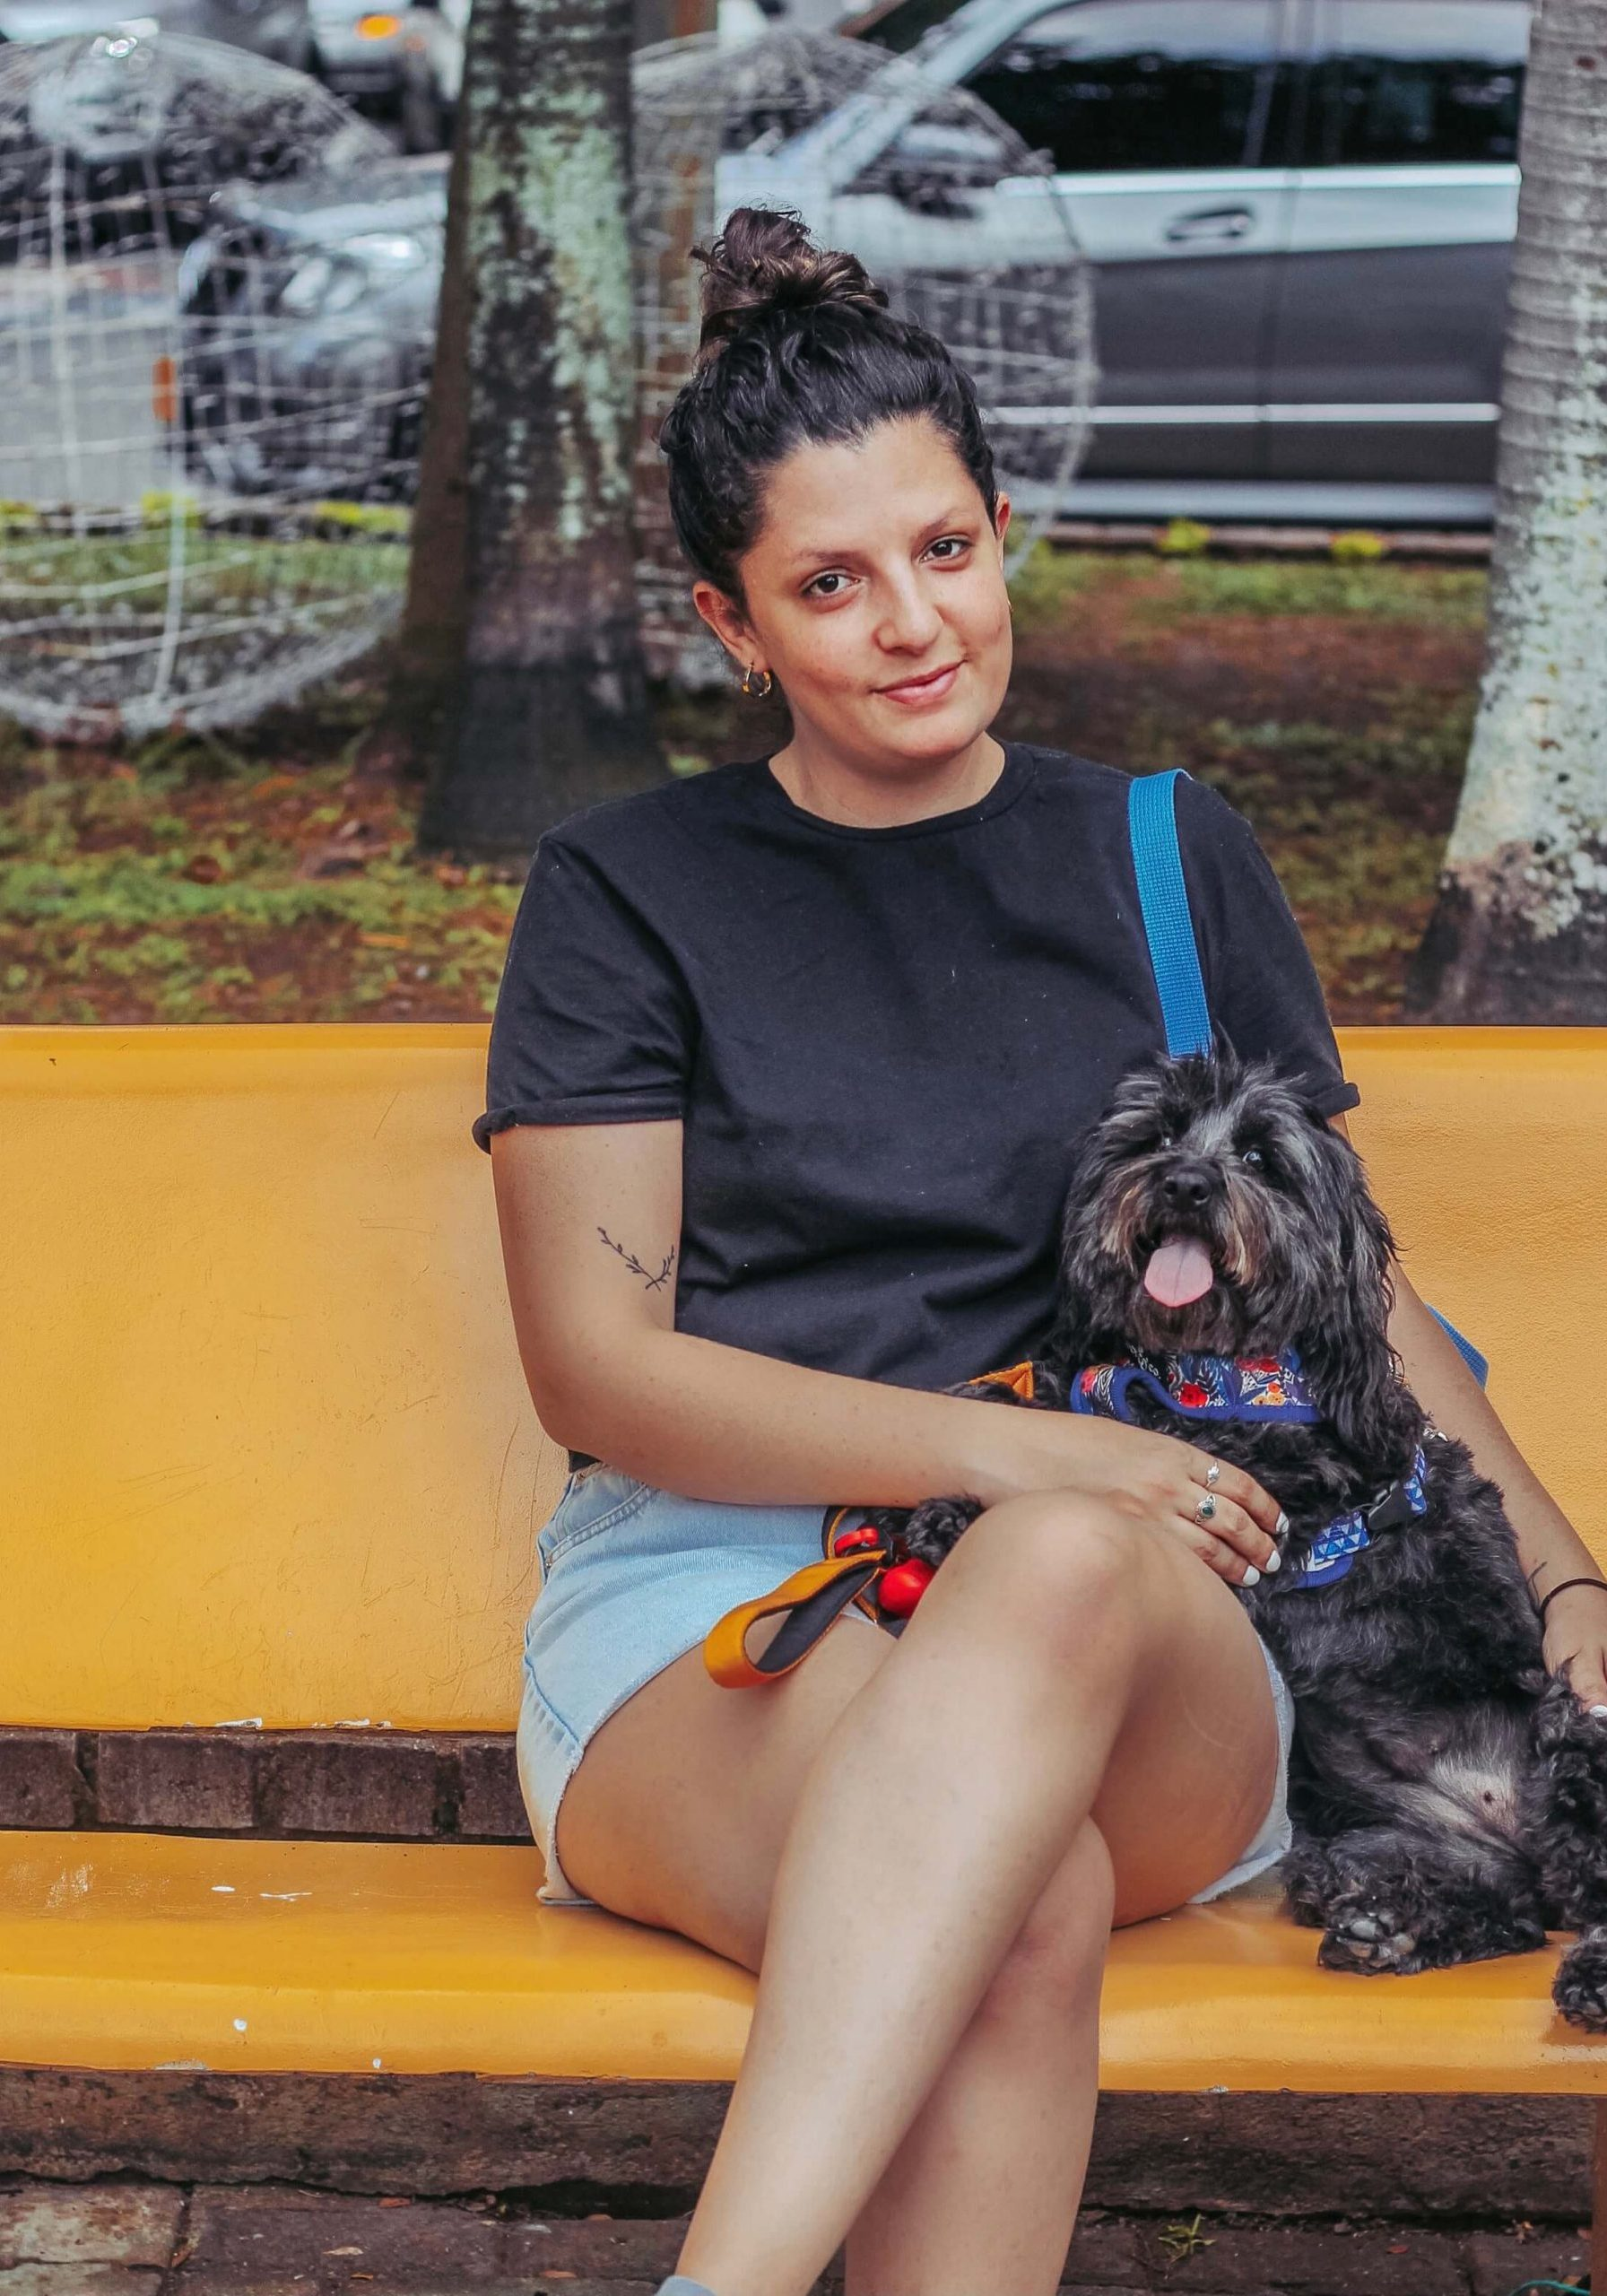 copywriter in Colombia, copywriter working remotely, copywriter sitting with dog